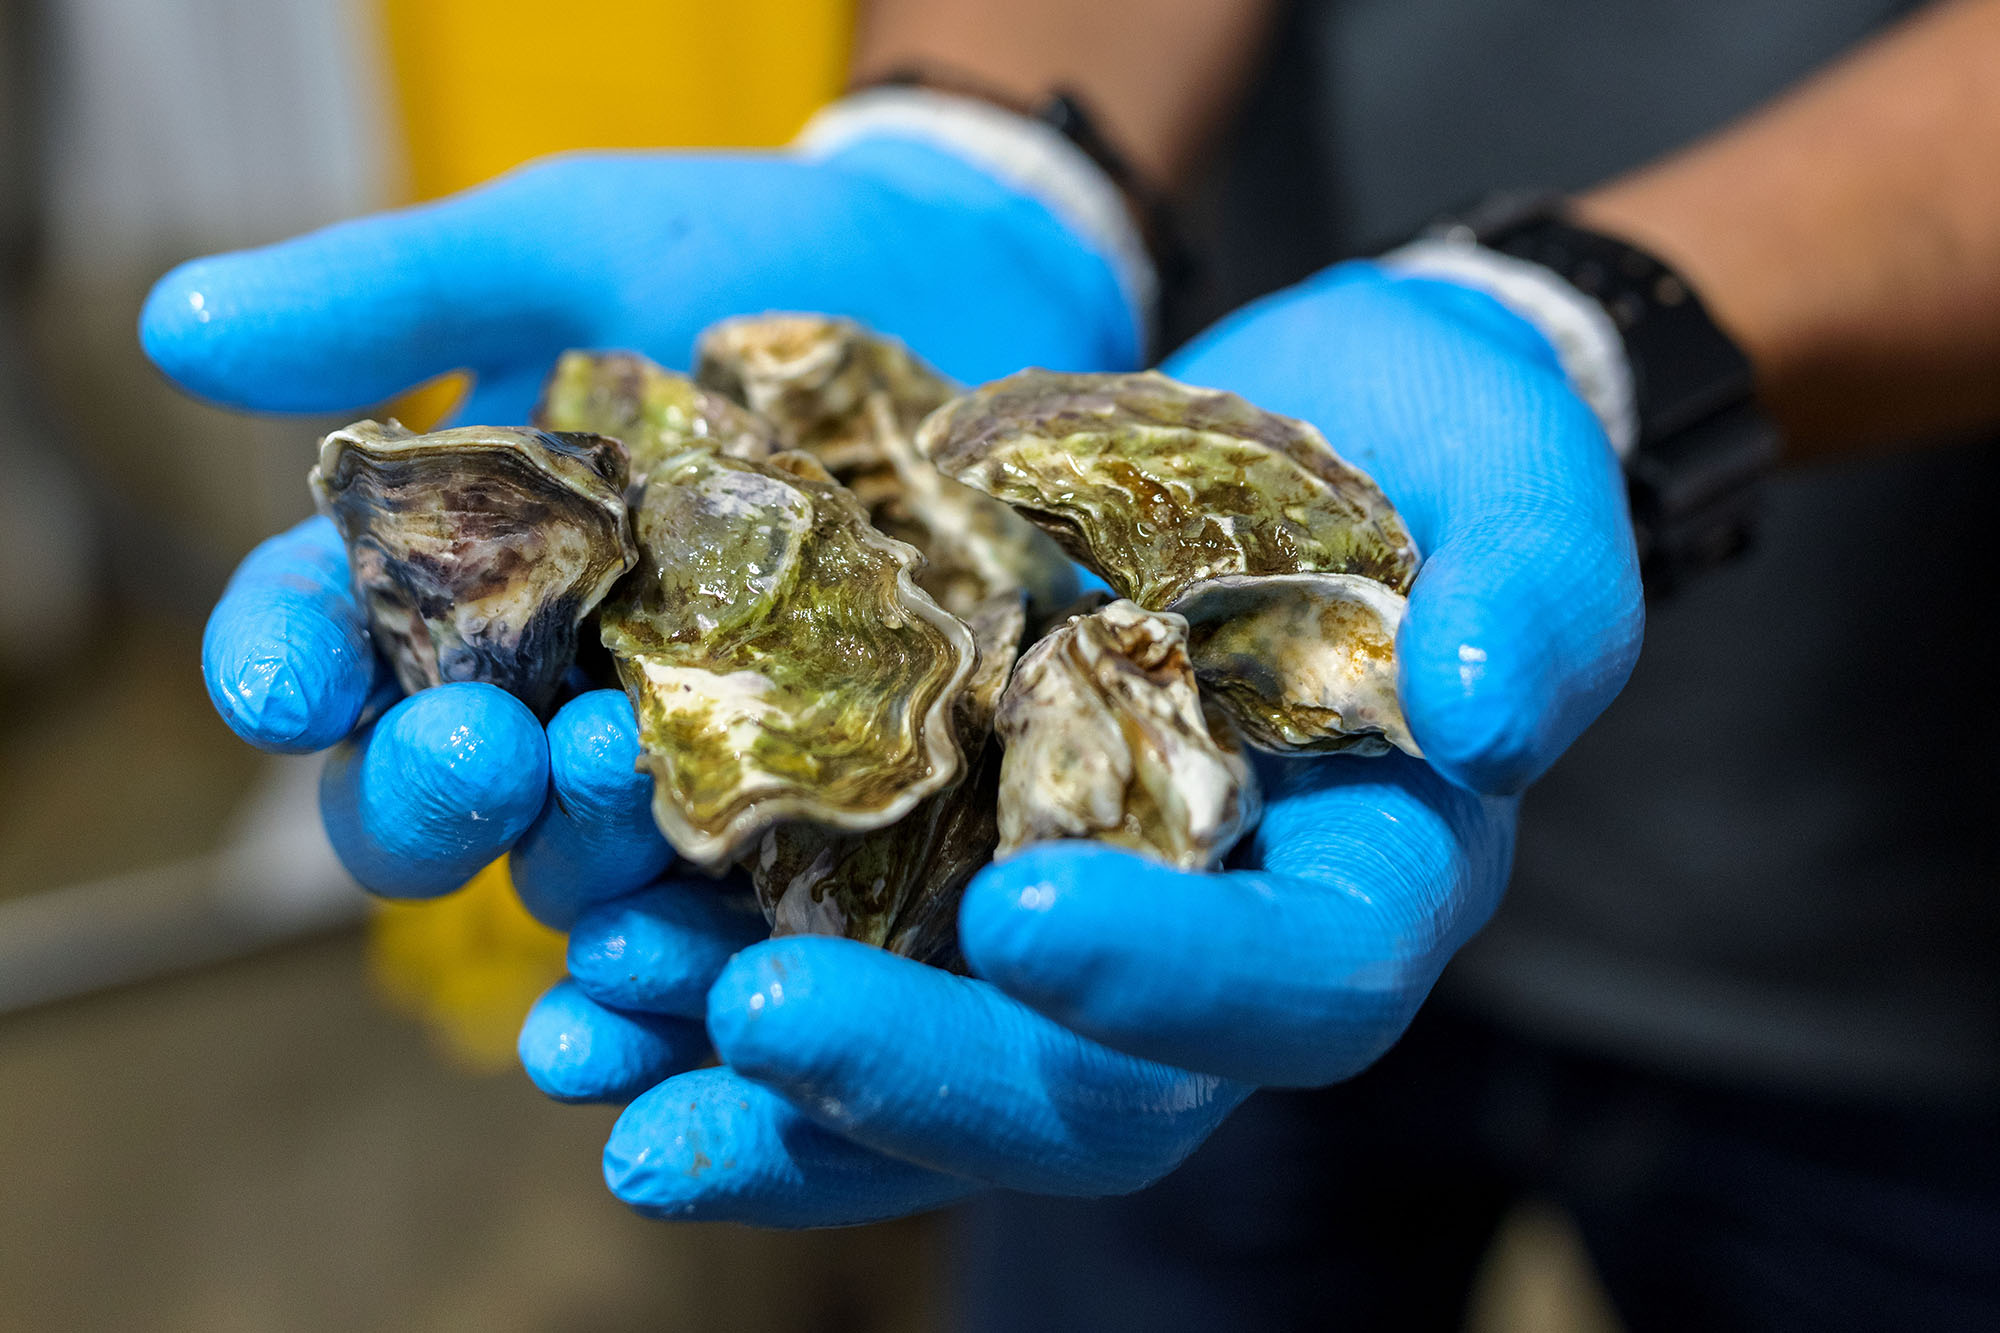 Our newest oyster has just arrived, straight from Orongo Bay, New Zealand!